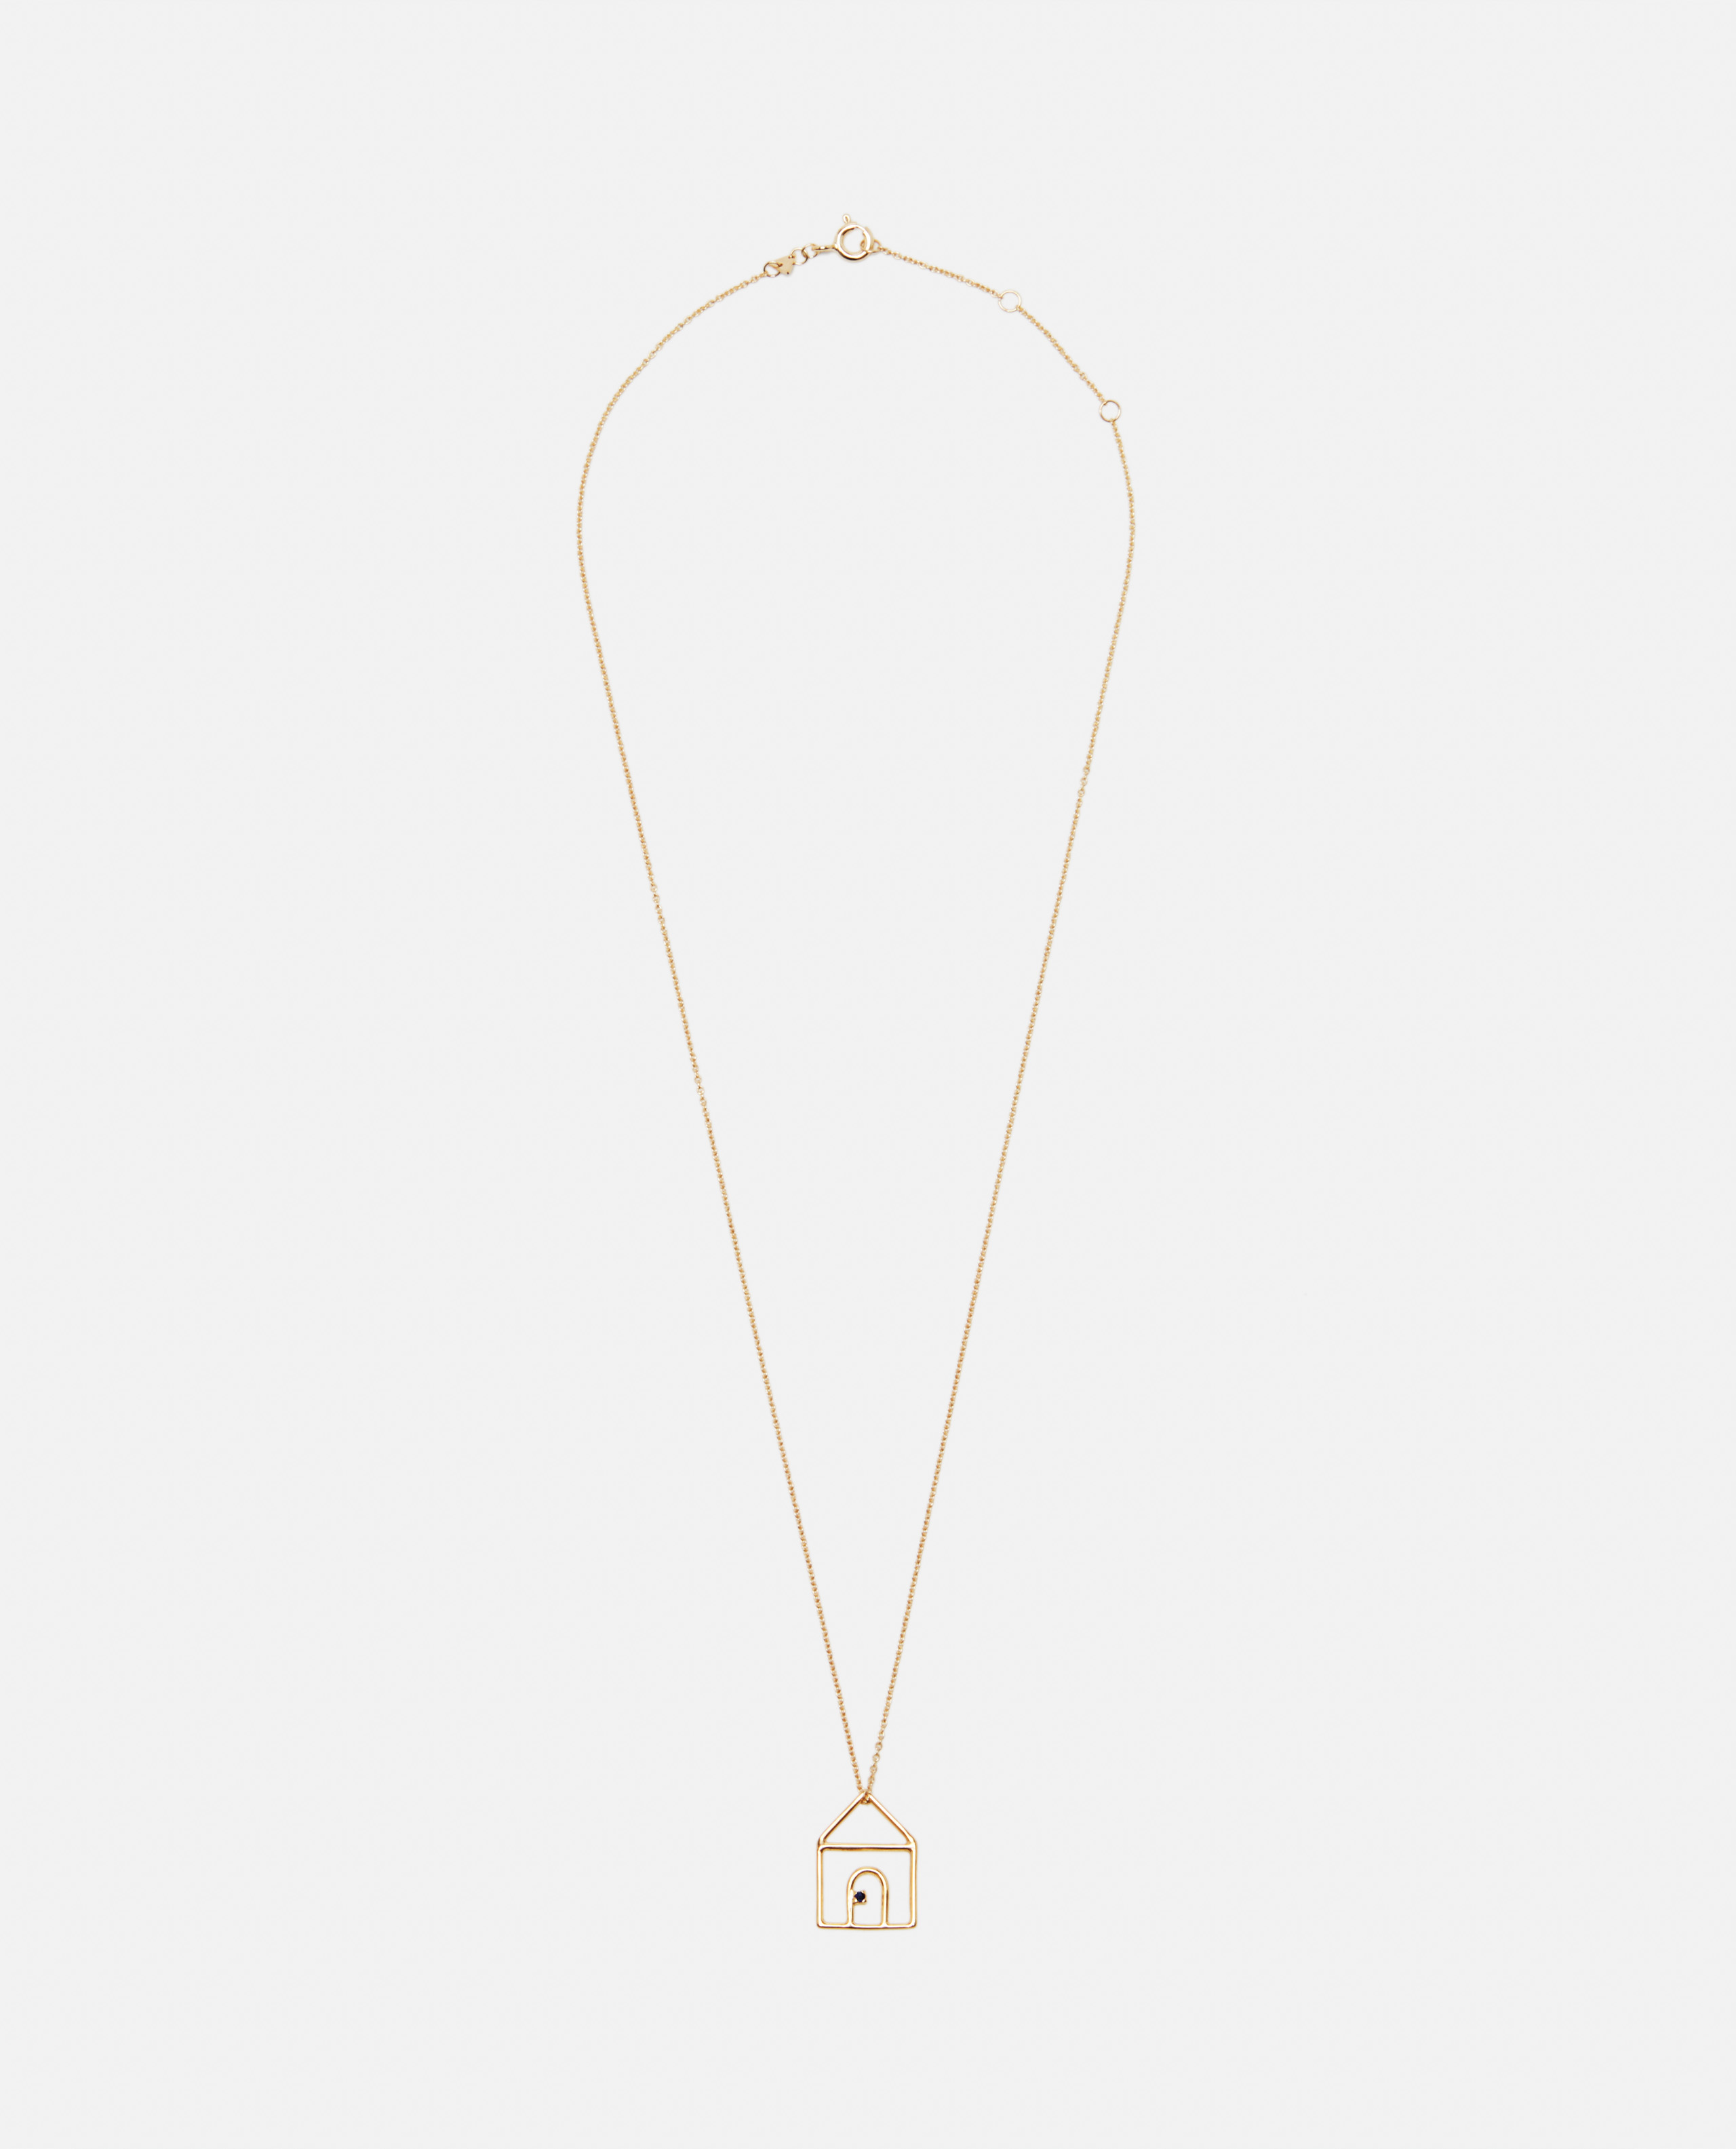 Casita necklace with pendant in 9kt yellow gold and sapphires